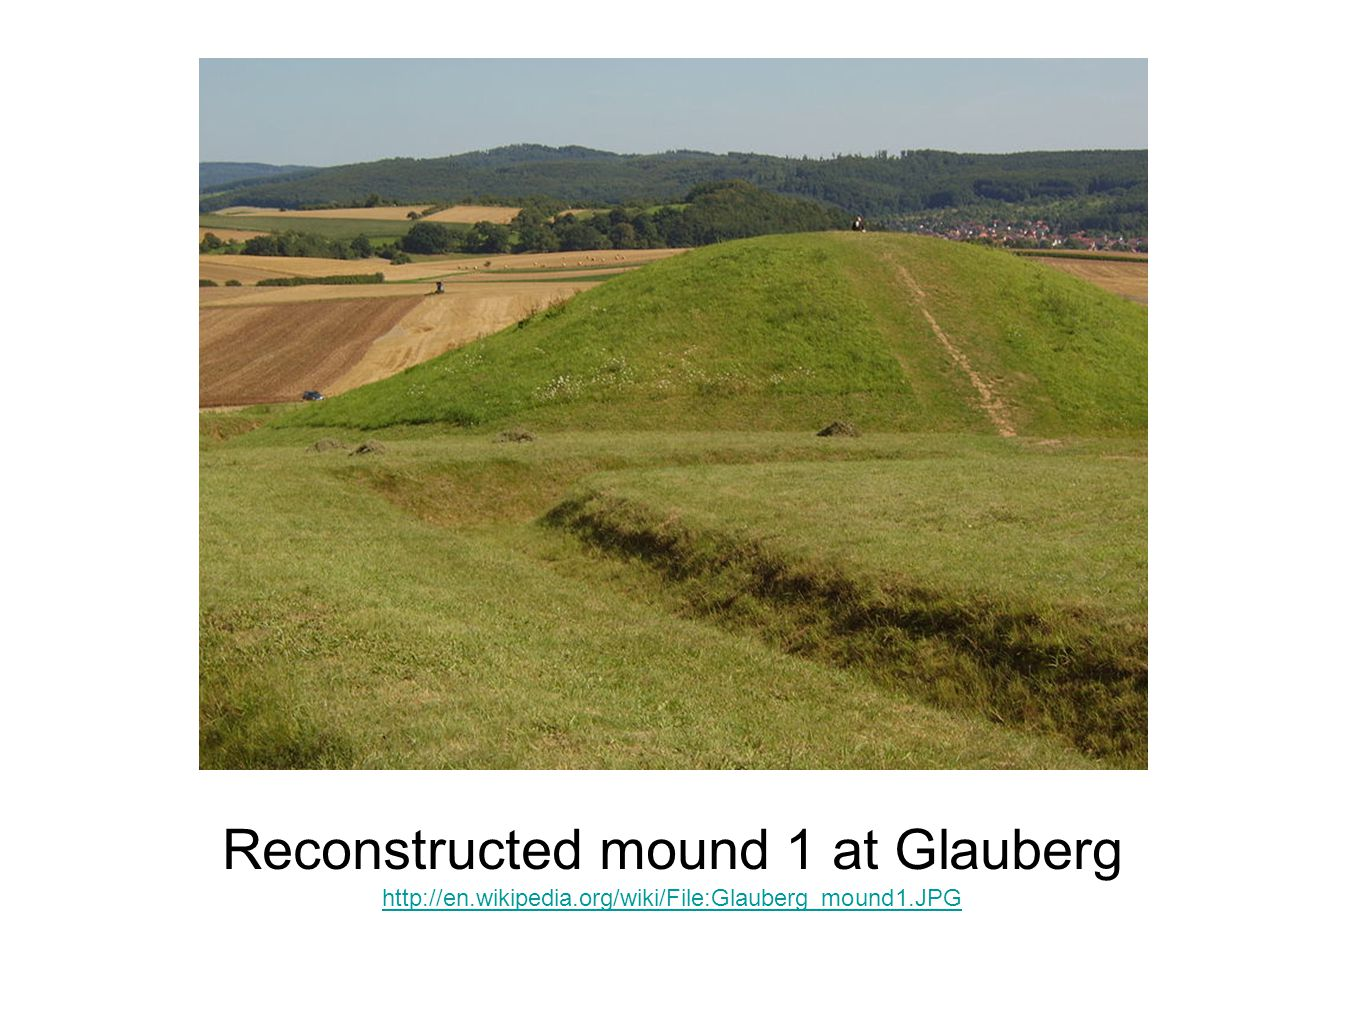 Reconstructed mound 1 at Glauberg